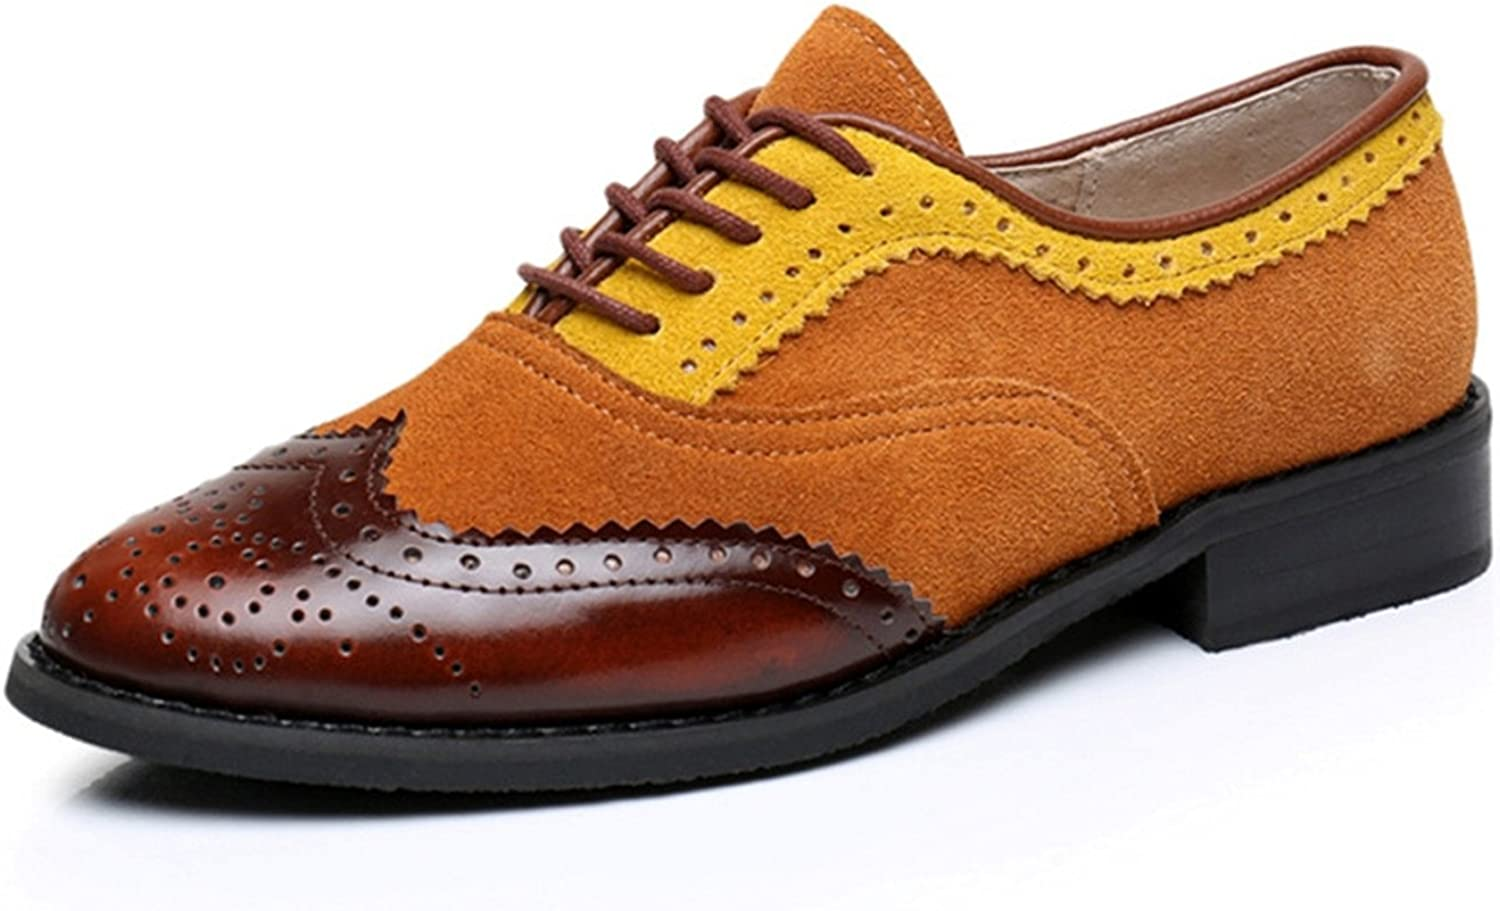 Mandaartins Women Genuine Leather Oxford shoes Flats Handmade Vintage Lace up Loafers Sneakers